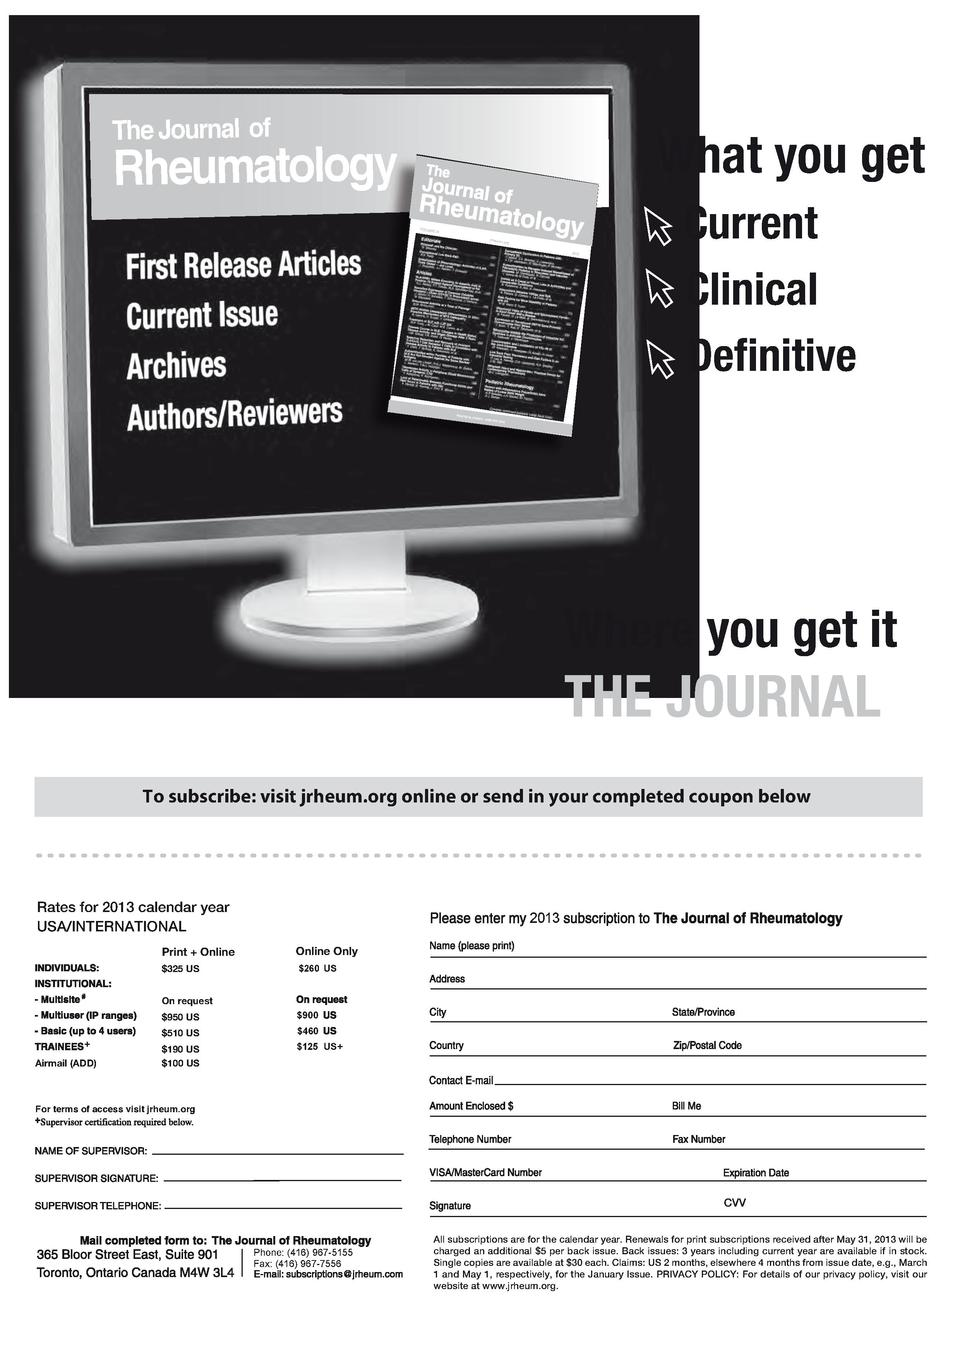 Overviewrs koda auto - 60 The Journal Of What You Get Rheumatology Volum E 38 Jrheum Org 2011 Printed